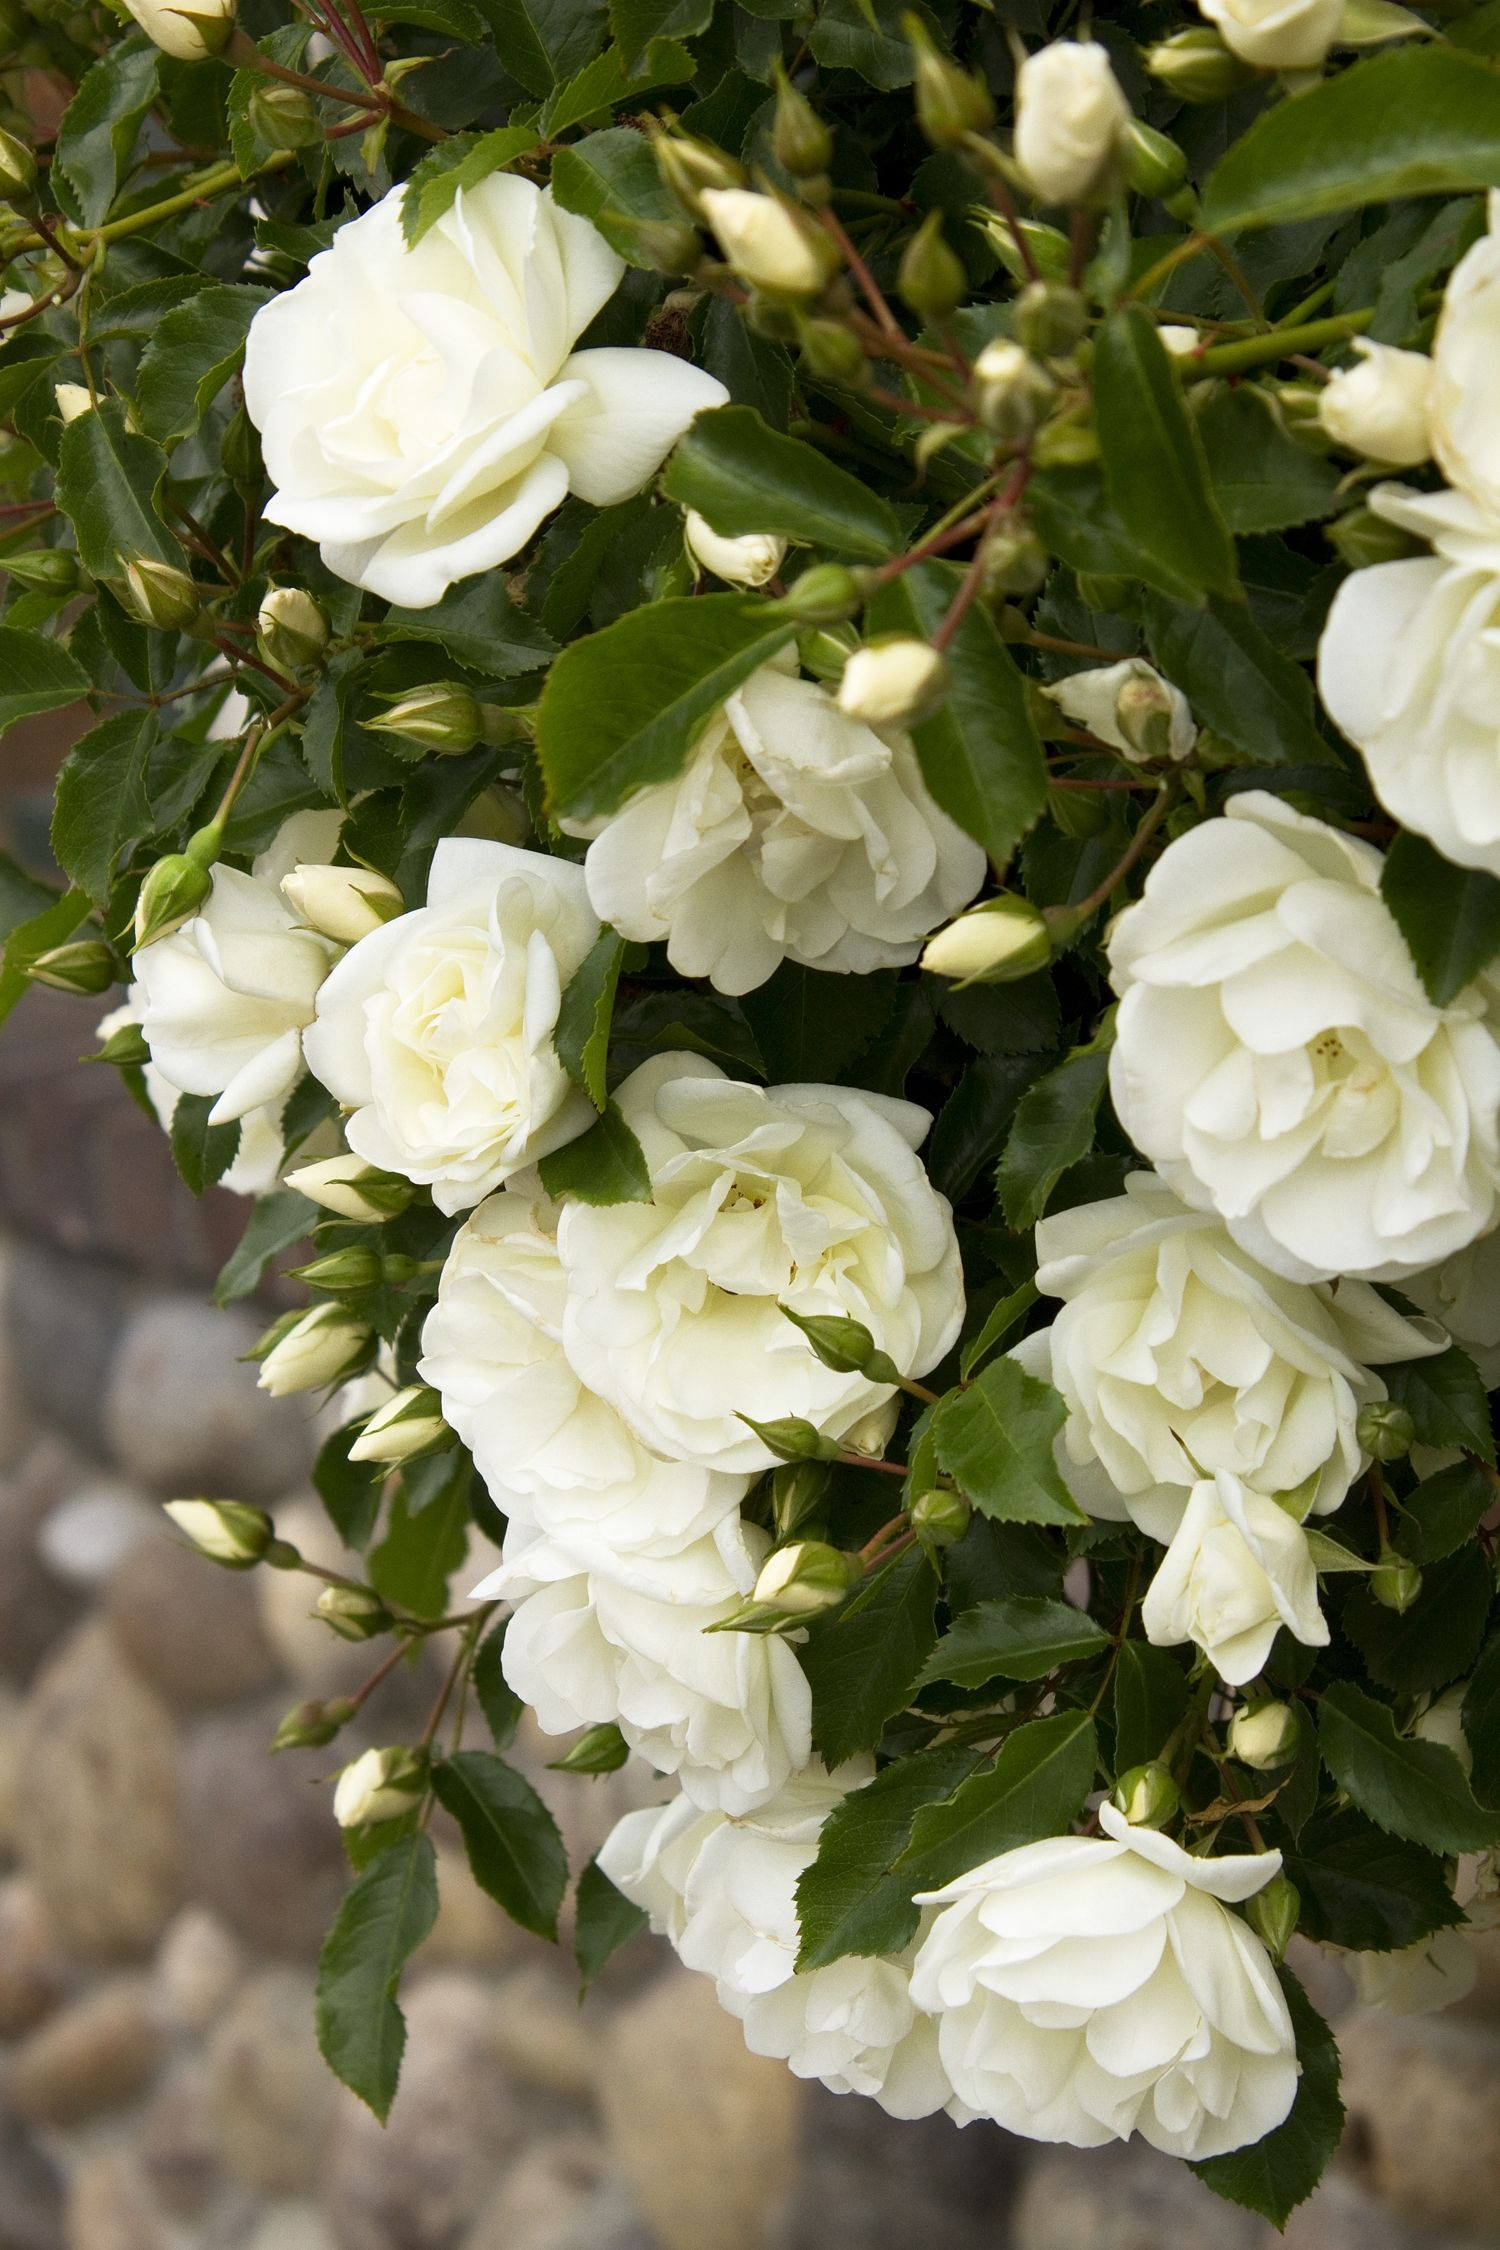 This groundcover rose has creamywhite flowers with rich